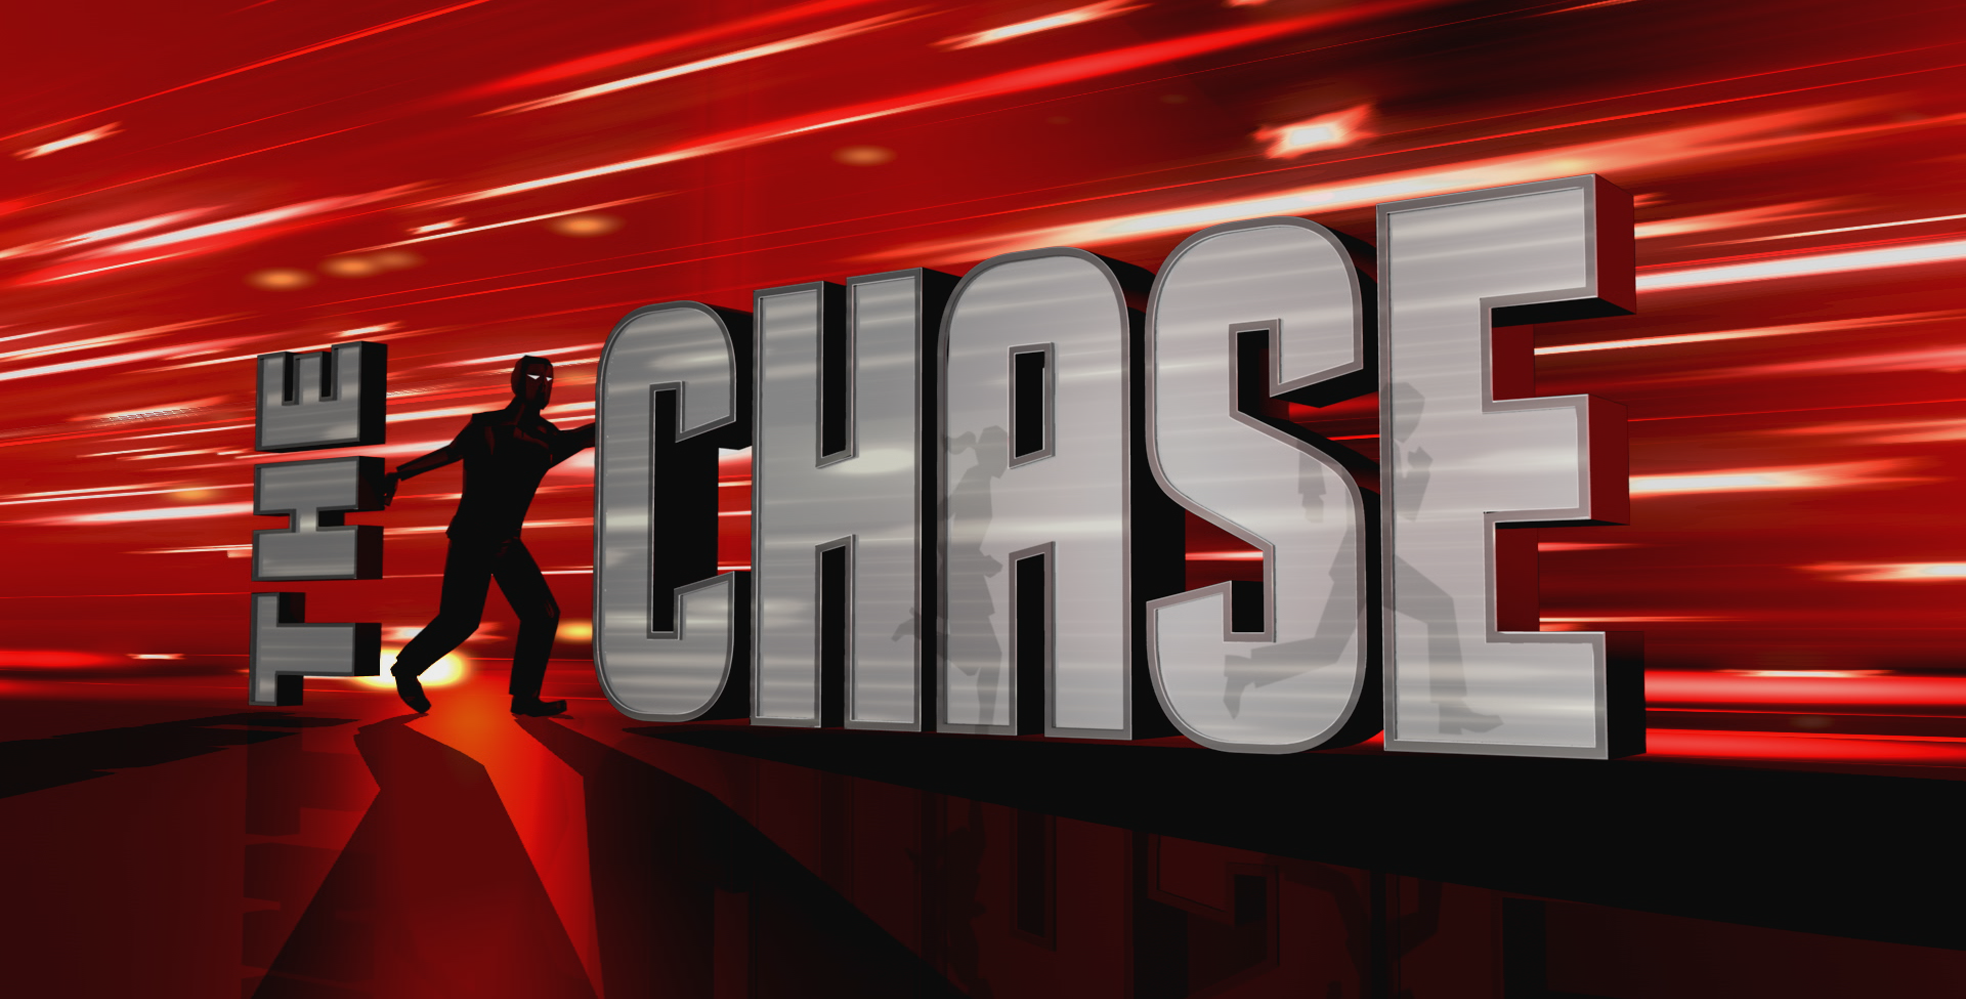 chase_new.png